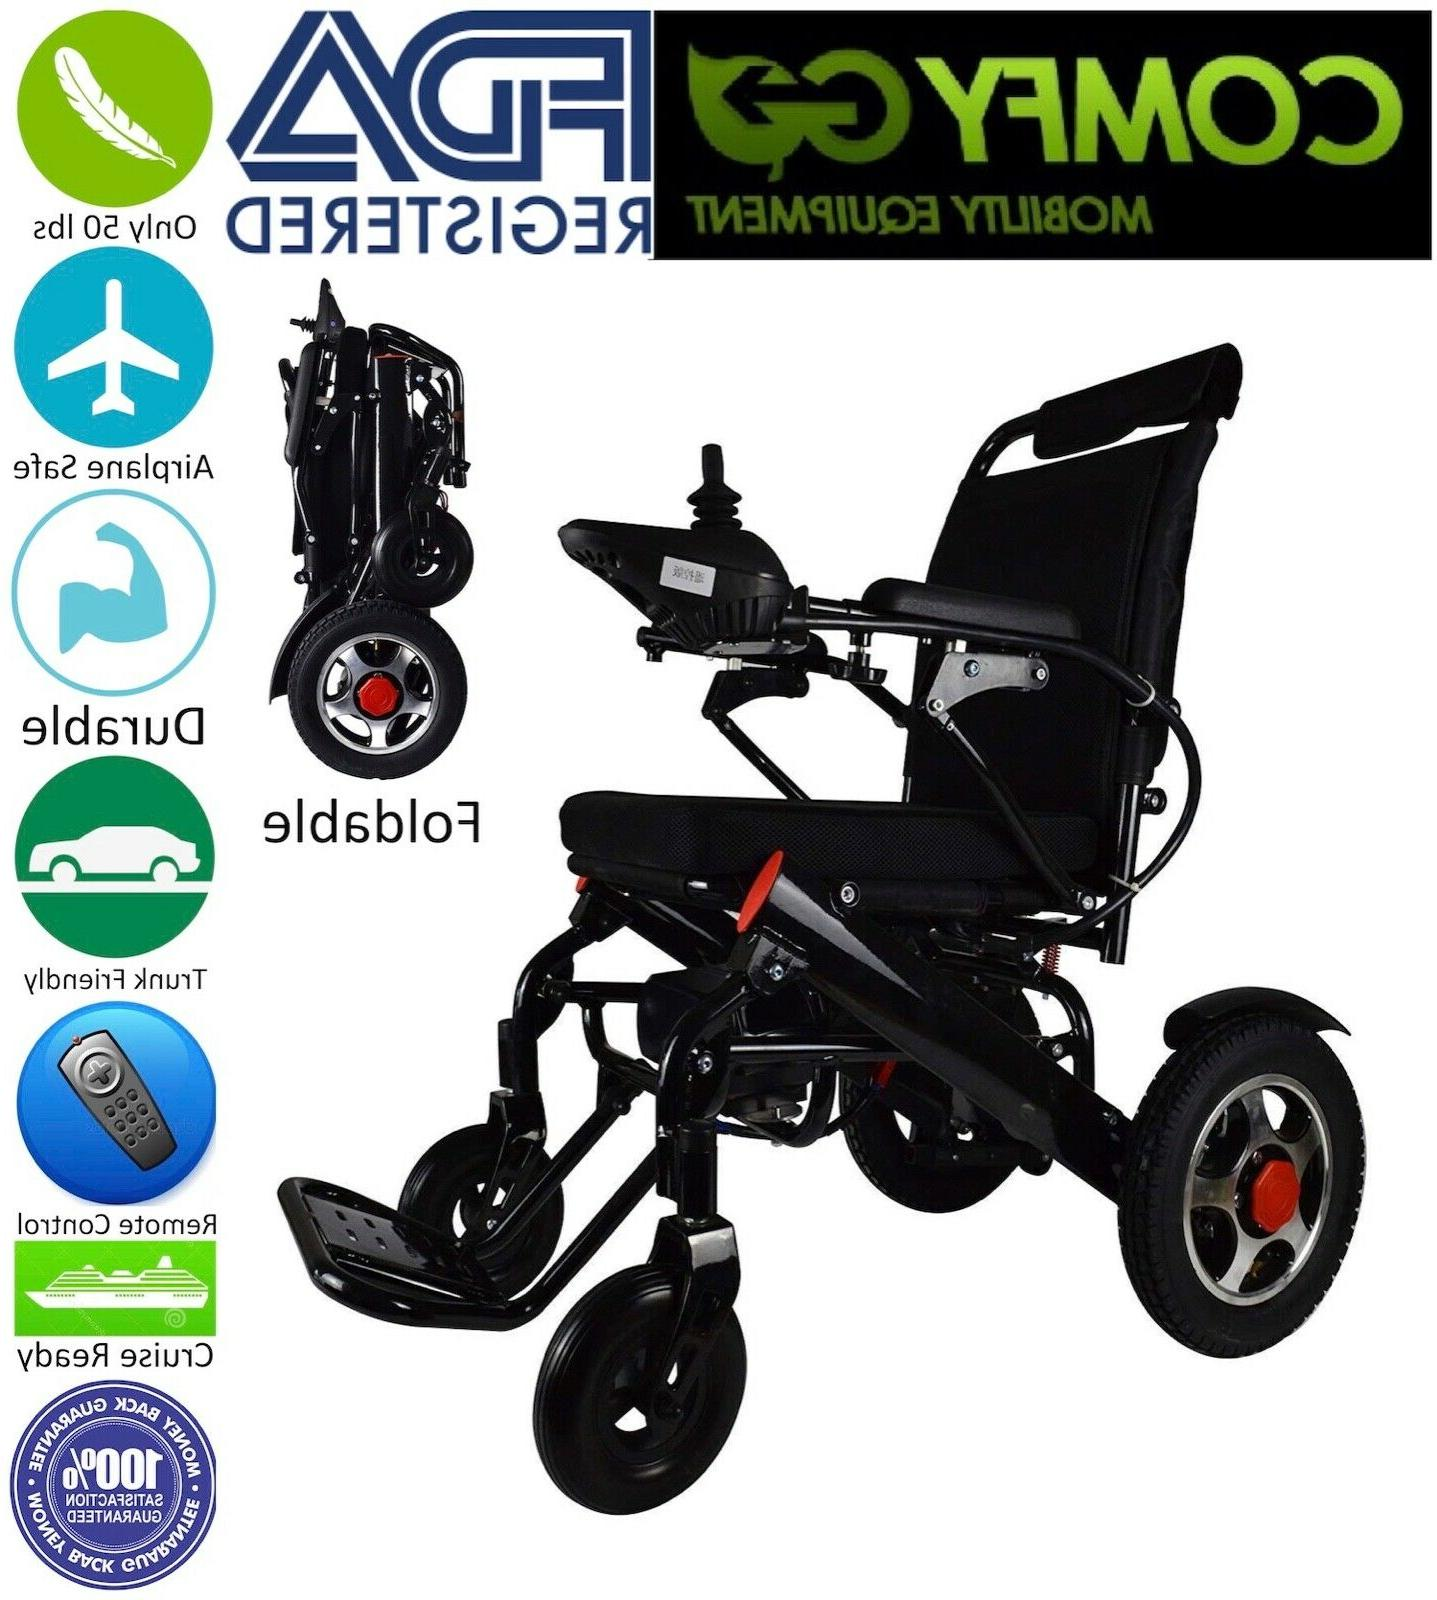 2019 fda approved transport friendly foldable lightweight